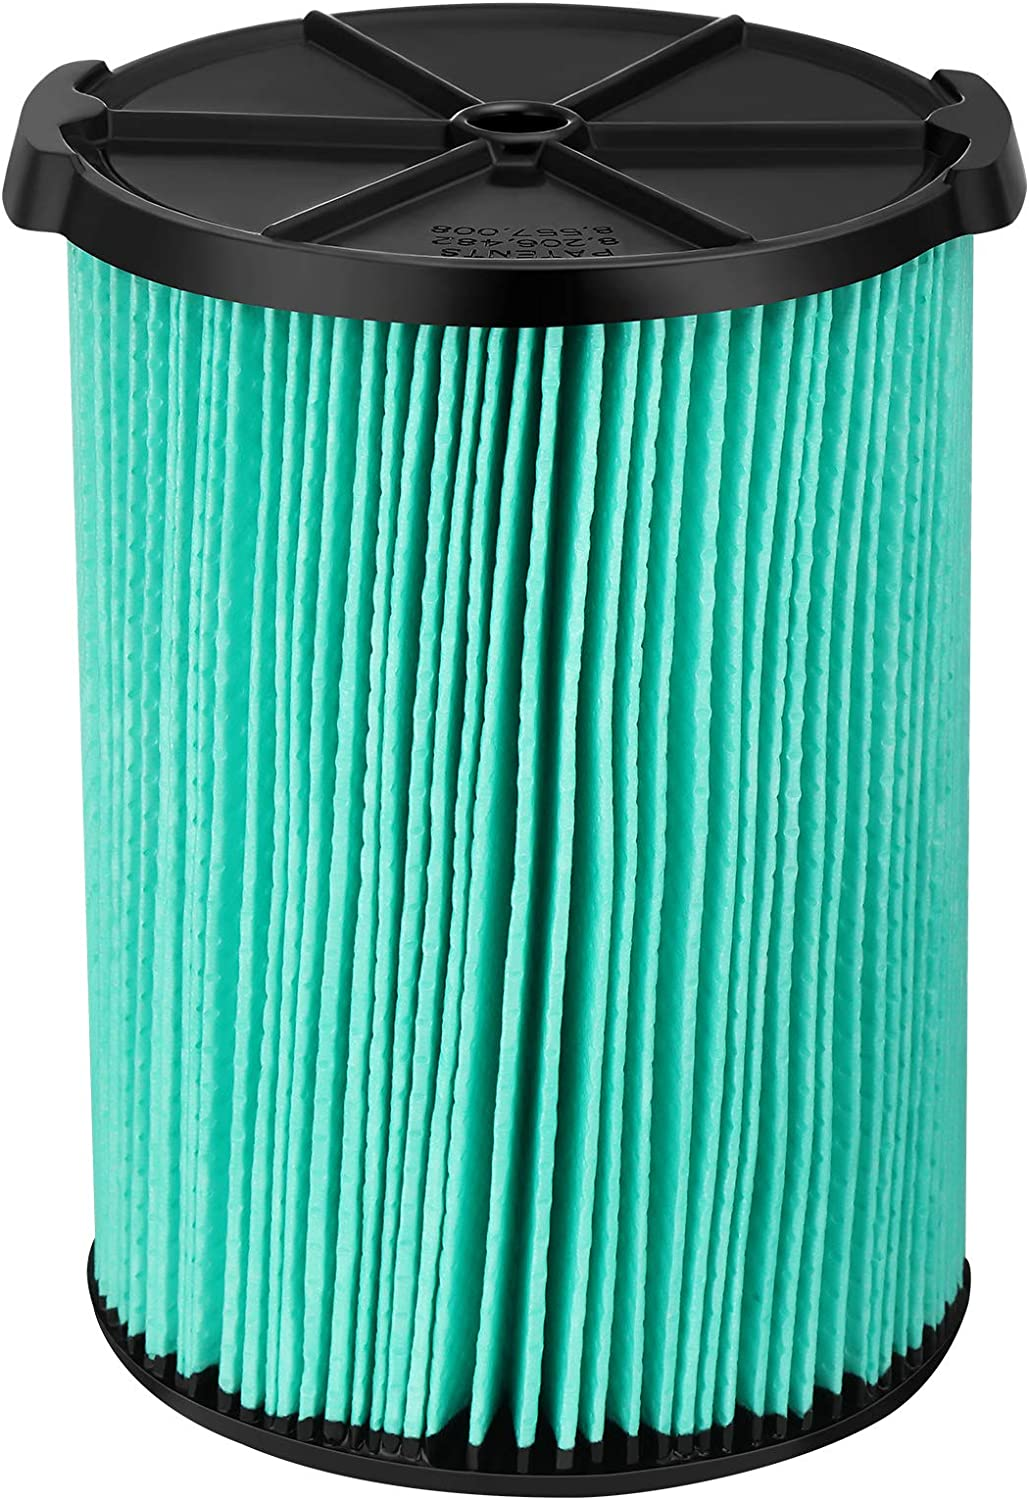 Cabiclean 5-Layer Pleated Replacement Filter Compatible with Ridgid VF6000 Wet/Dry 5-20 gallon vacuums